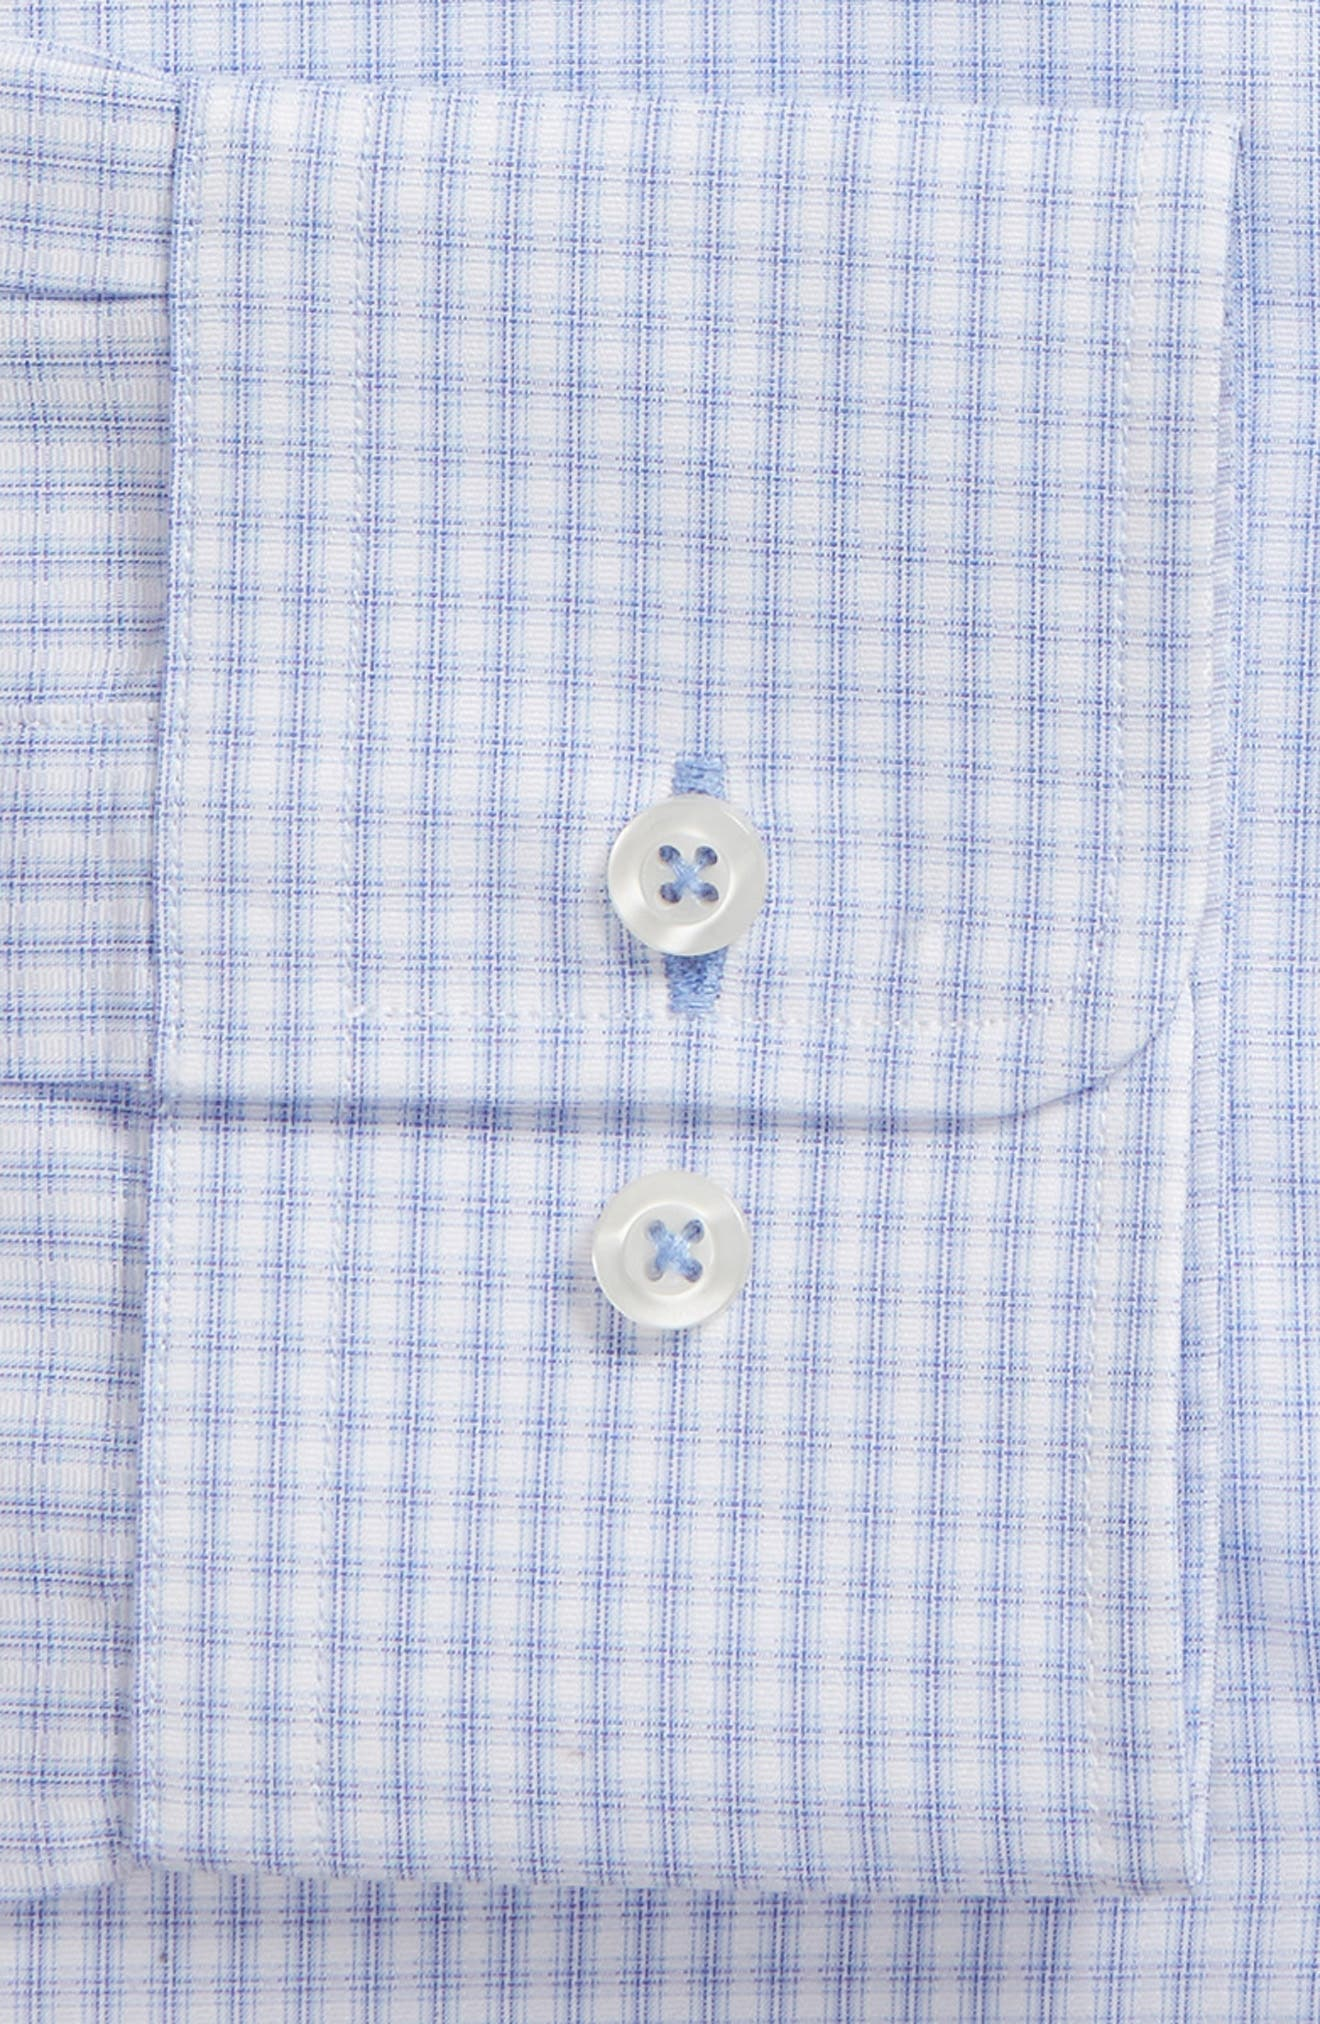 Regular Fit Check Dress Shirt,                             Alternate thumbnail 6, color,                             423